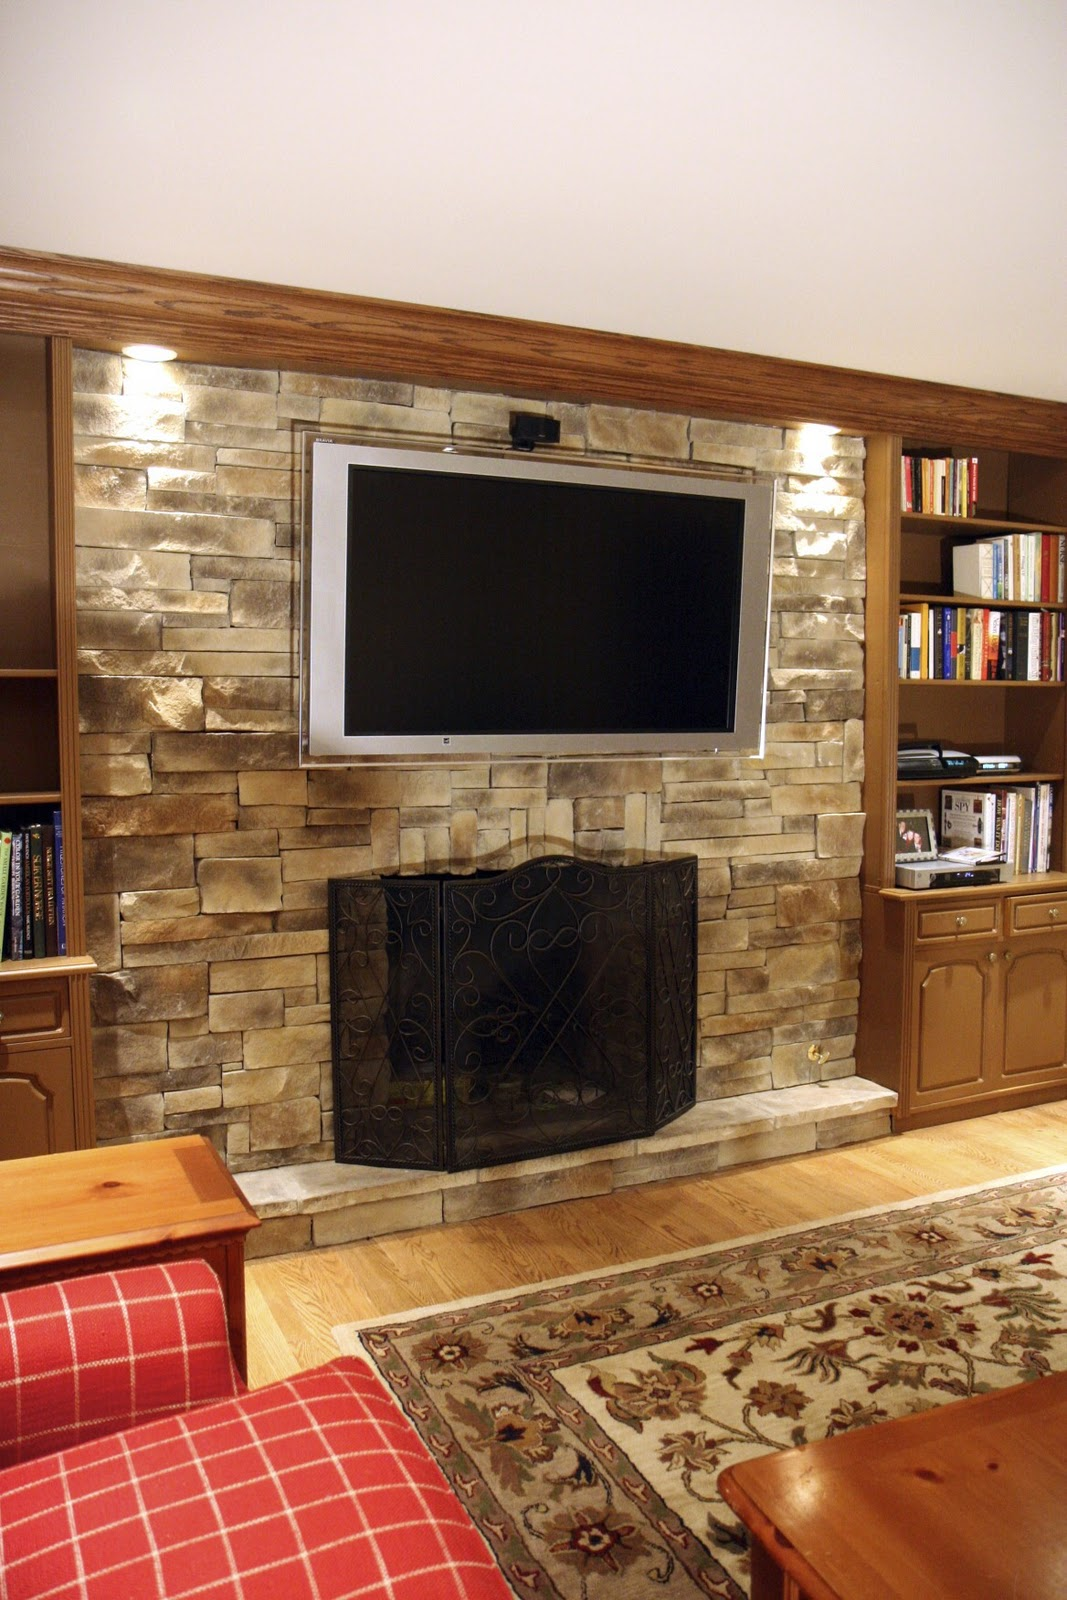 Modern Dark Fireplace Decor Ideas with Slim Iron Element close Great Stone Wall